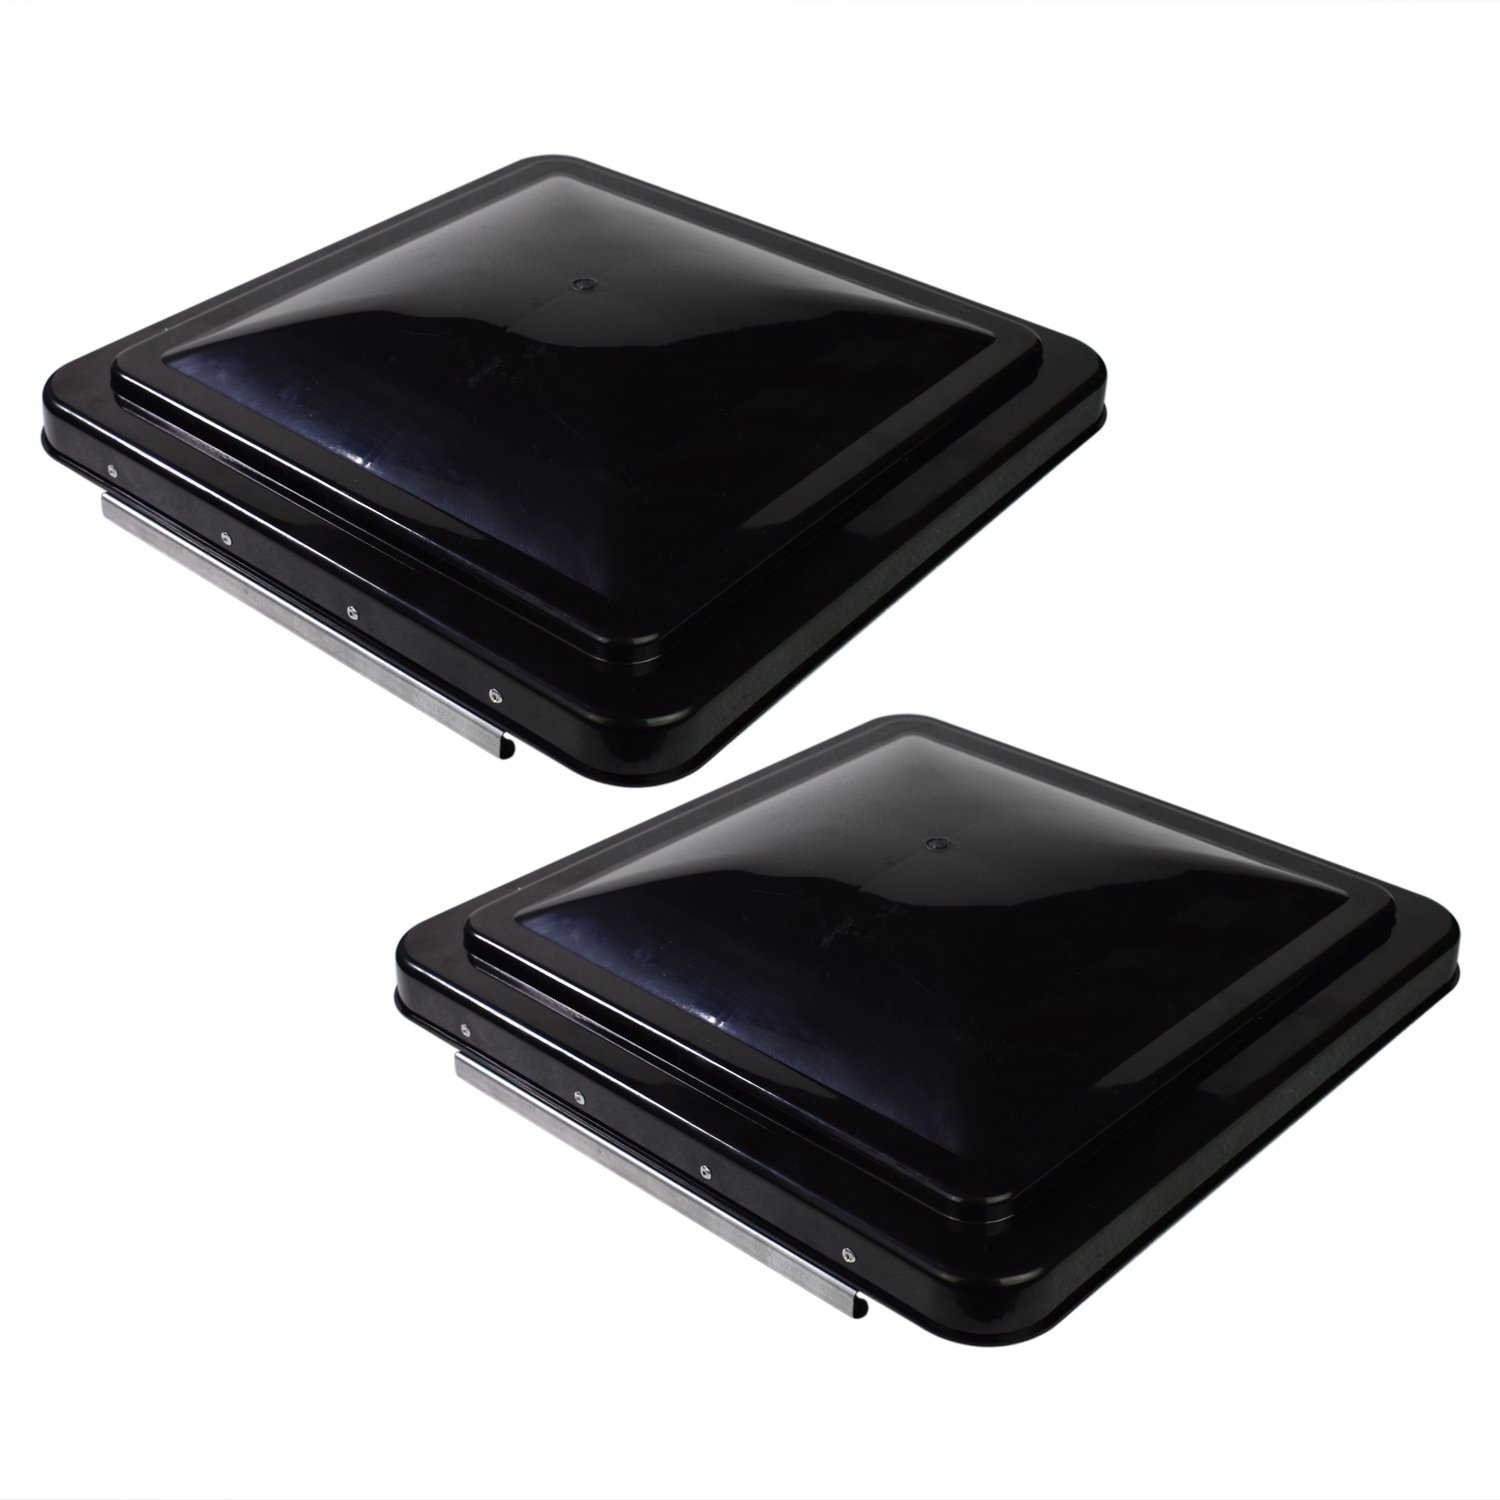 Leisure 2 Packs 14 Inch RV Roof Vent Cover Universal Replacement Vent Lid Black for Camper Trailer Motorhome by Leisure